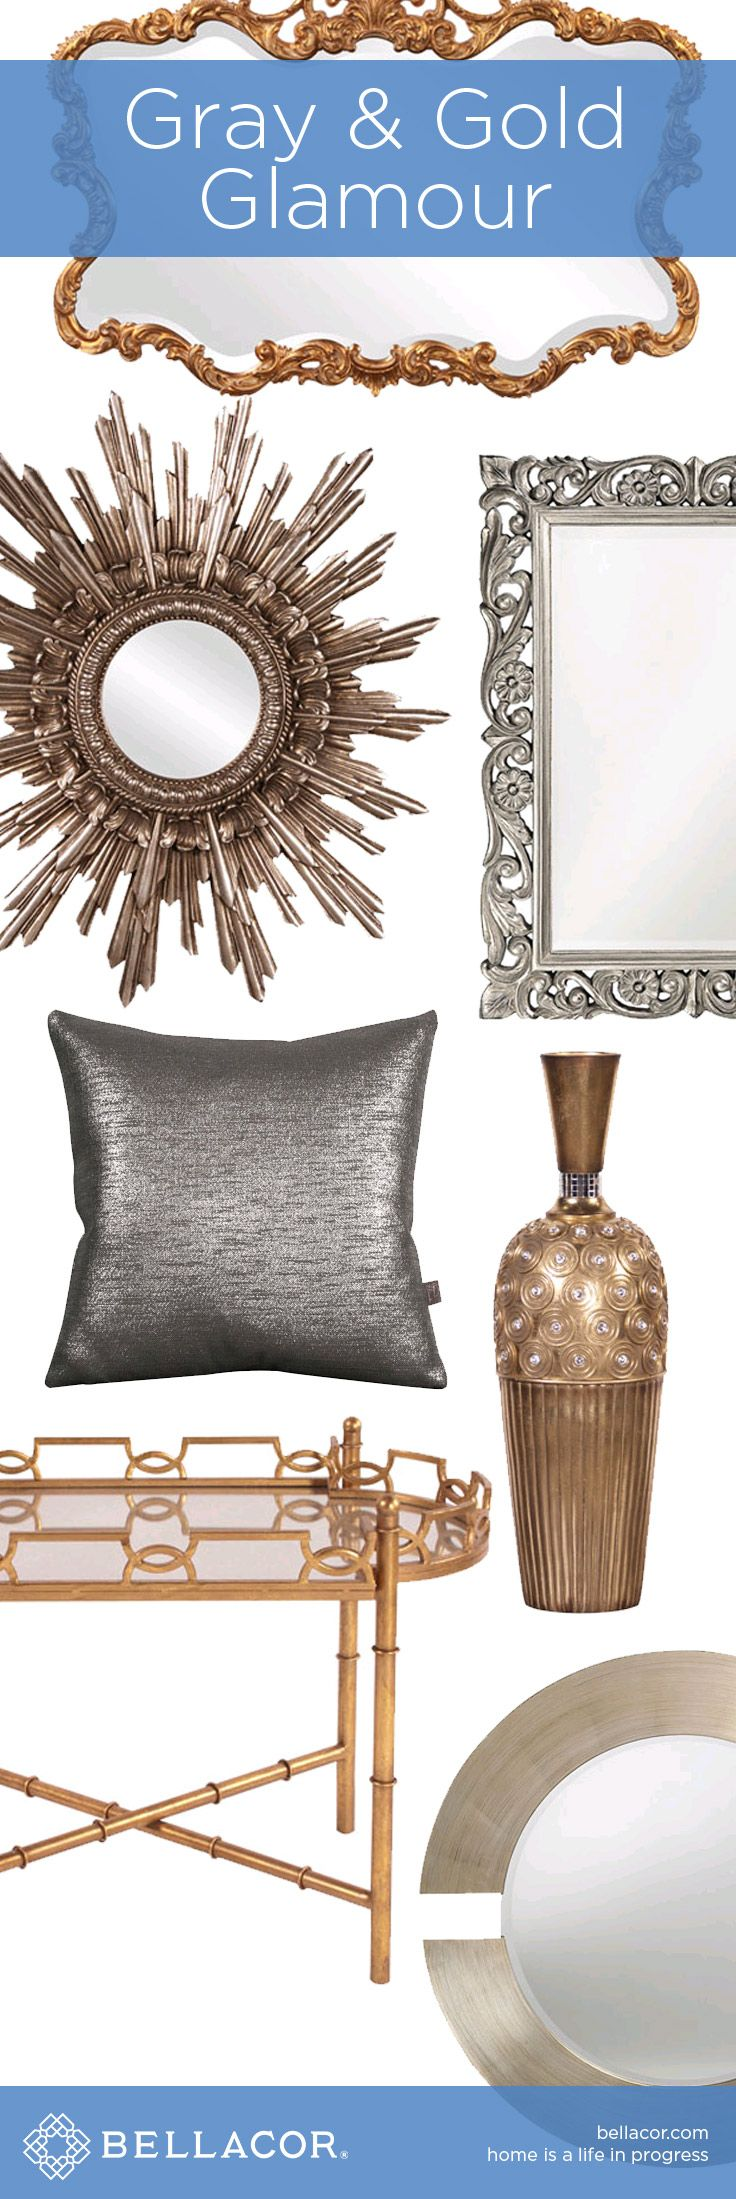 Gray & Gold Glamour - Shop Decor, Lighting, and Furniture at http://www.bellacor.com/